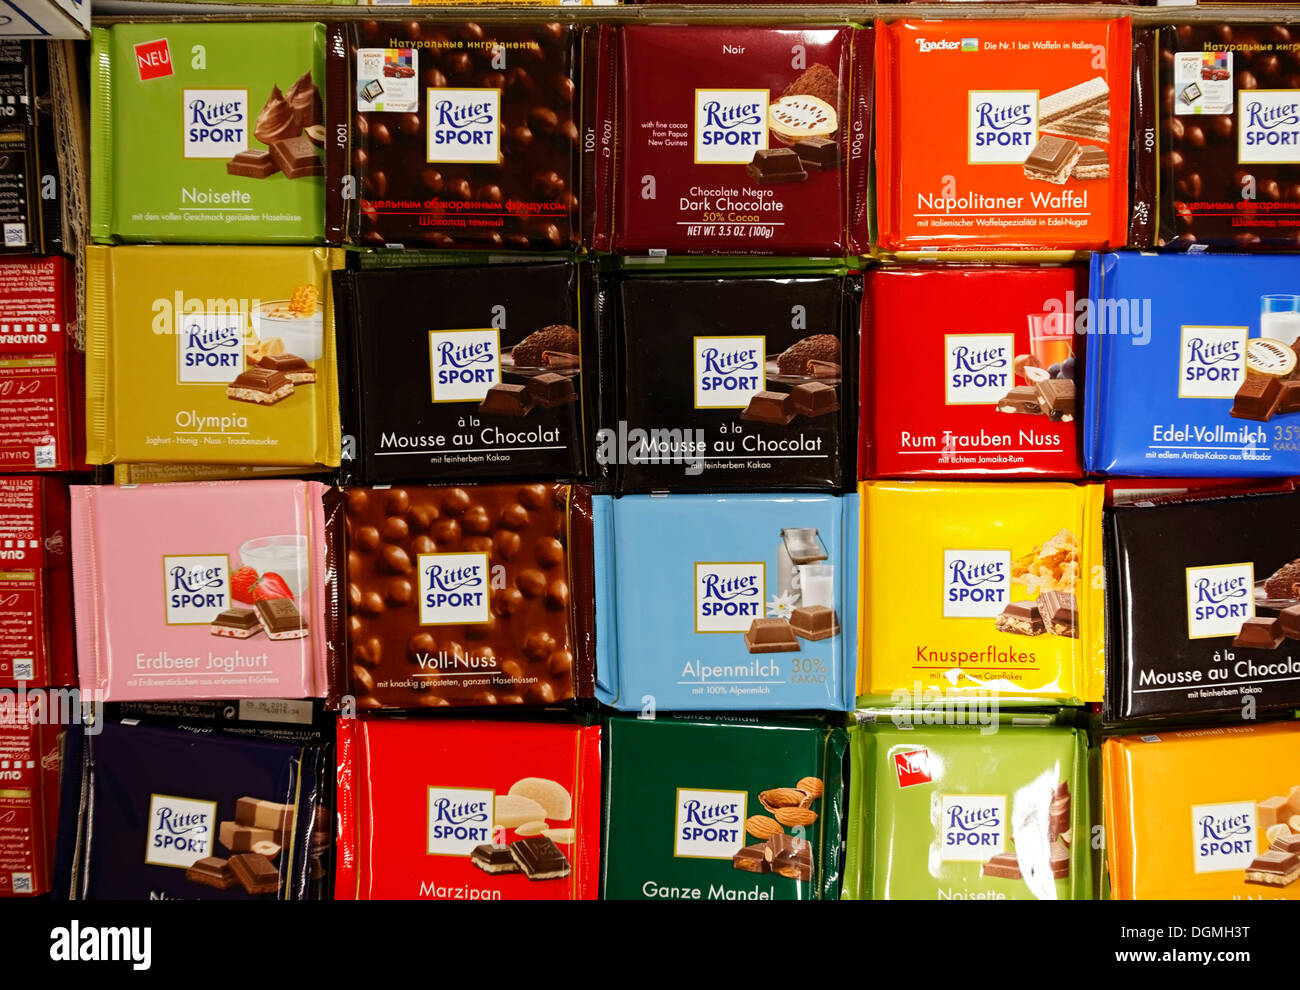 Ritter Sport chocolate in a food kiosk in Cologne Central Station ...